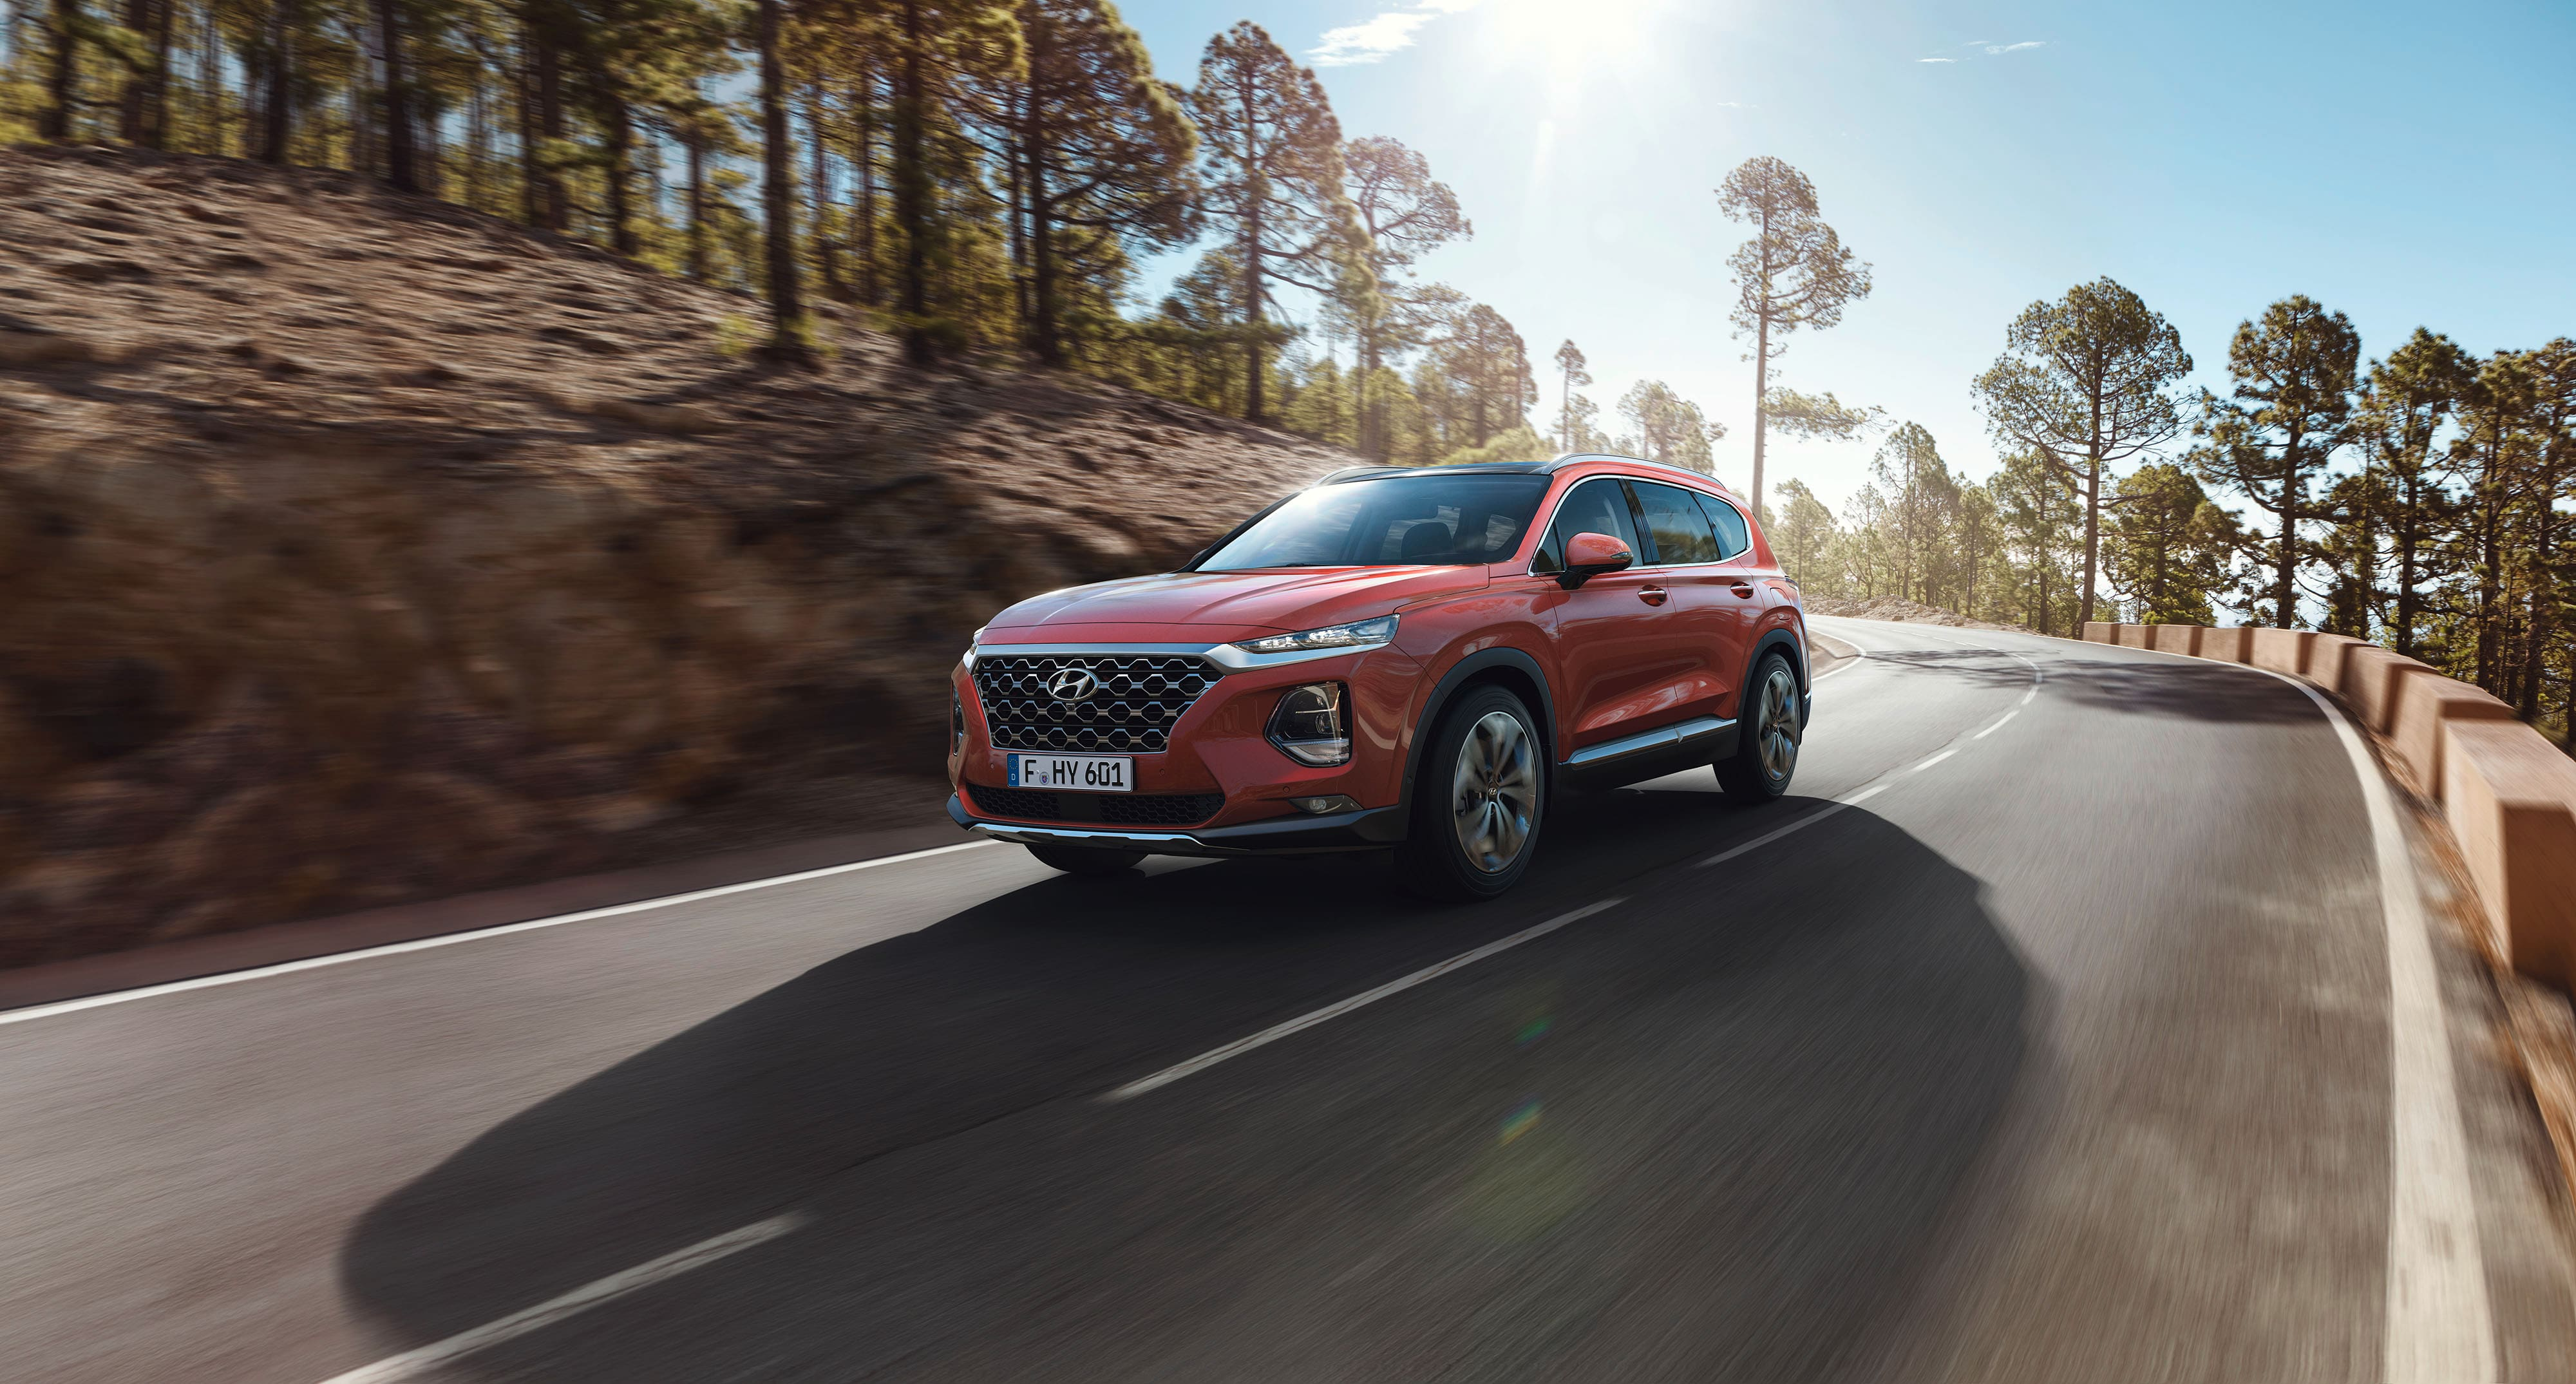 Hyundai Motor Celebrates the World Premiere of the New Generation Hyundai Santa Fe